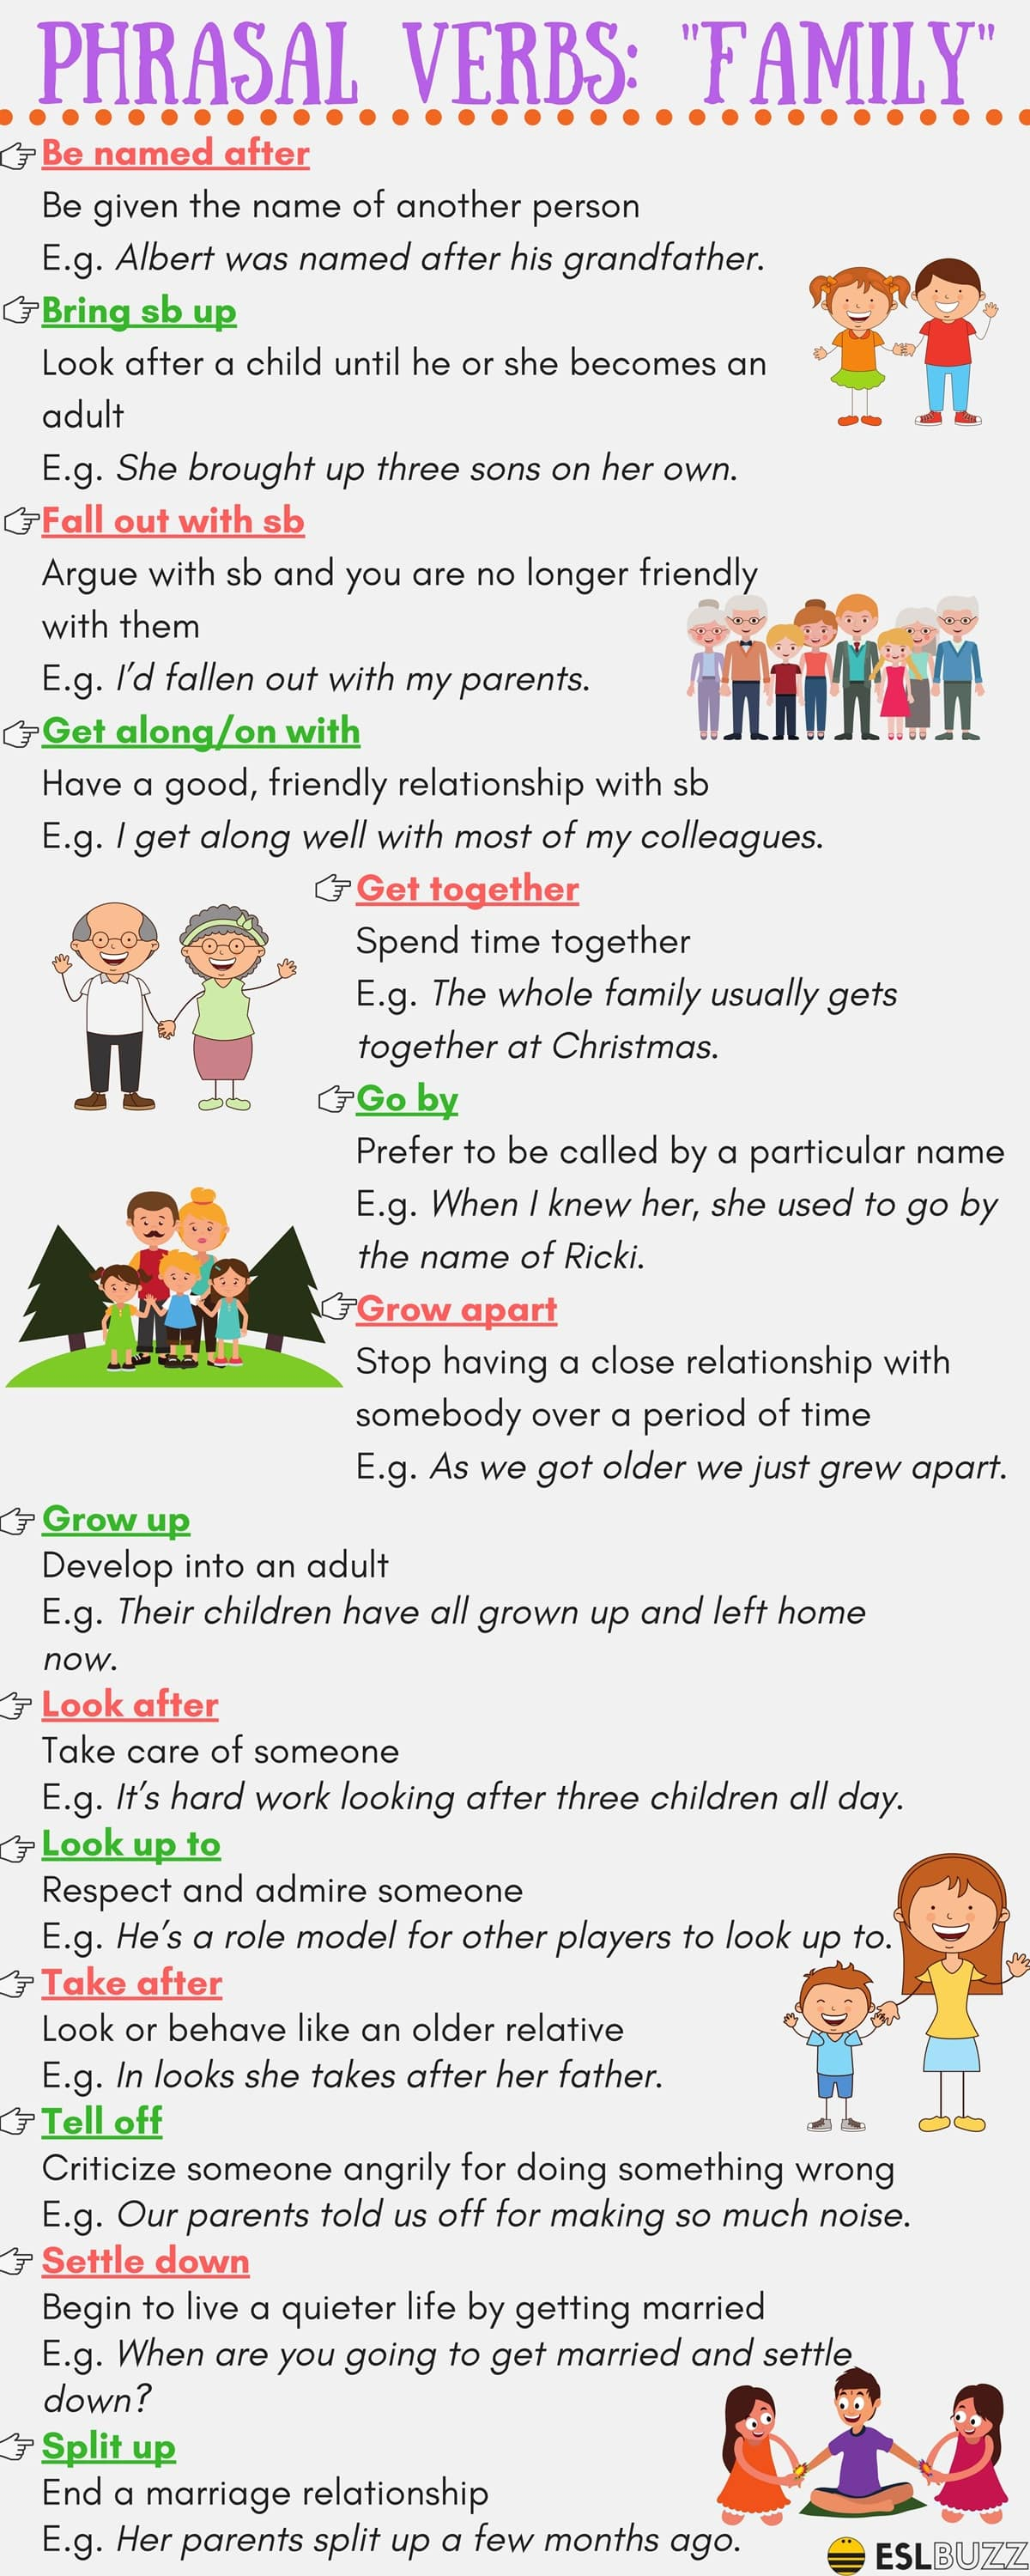 Commonly Used Phrasal Verbs for FAMILY 14